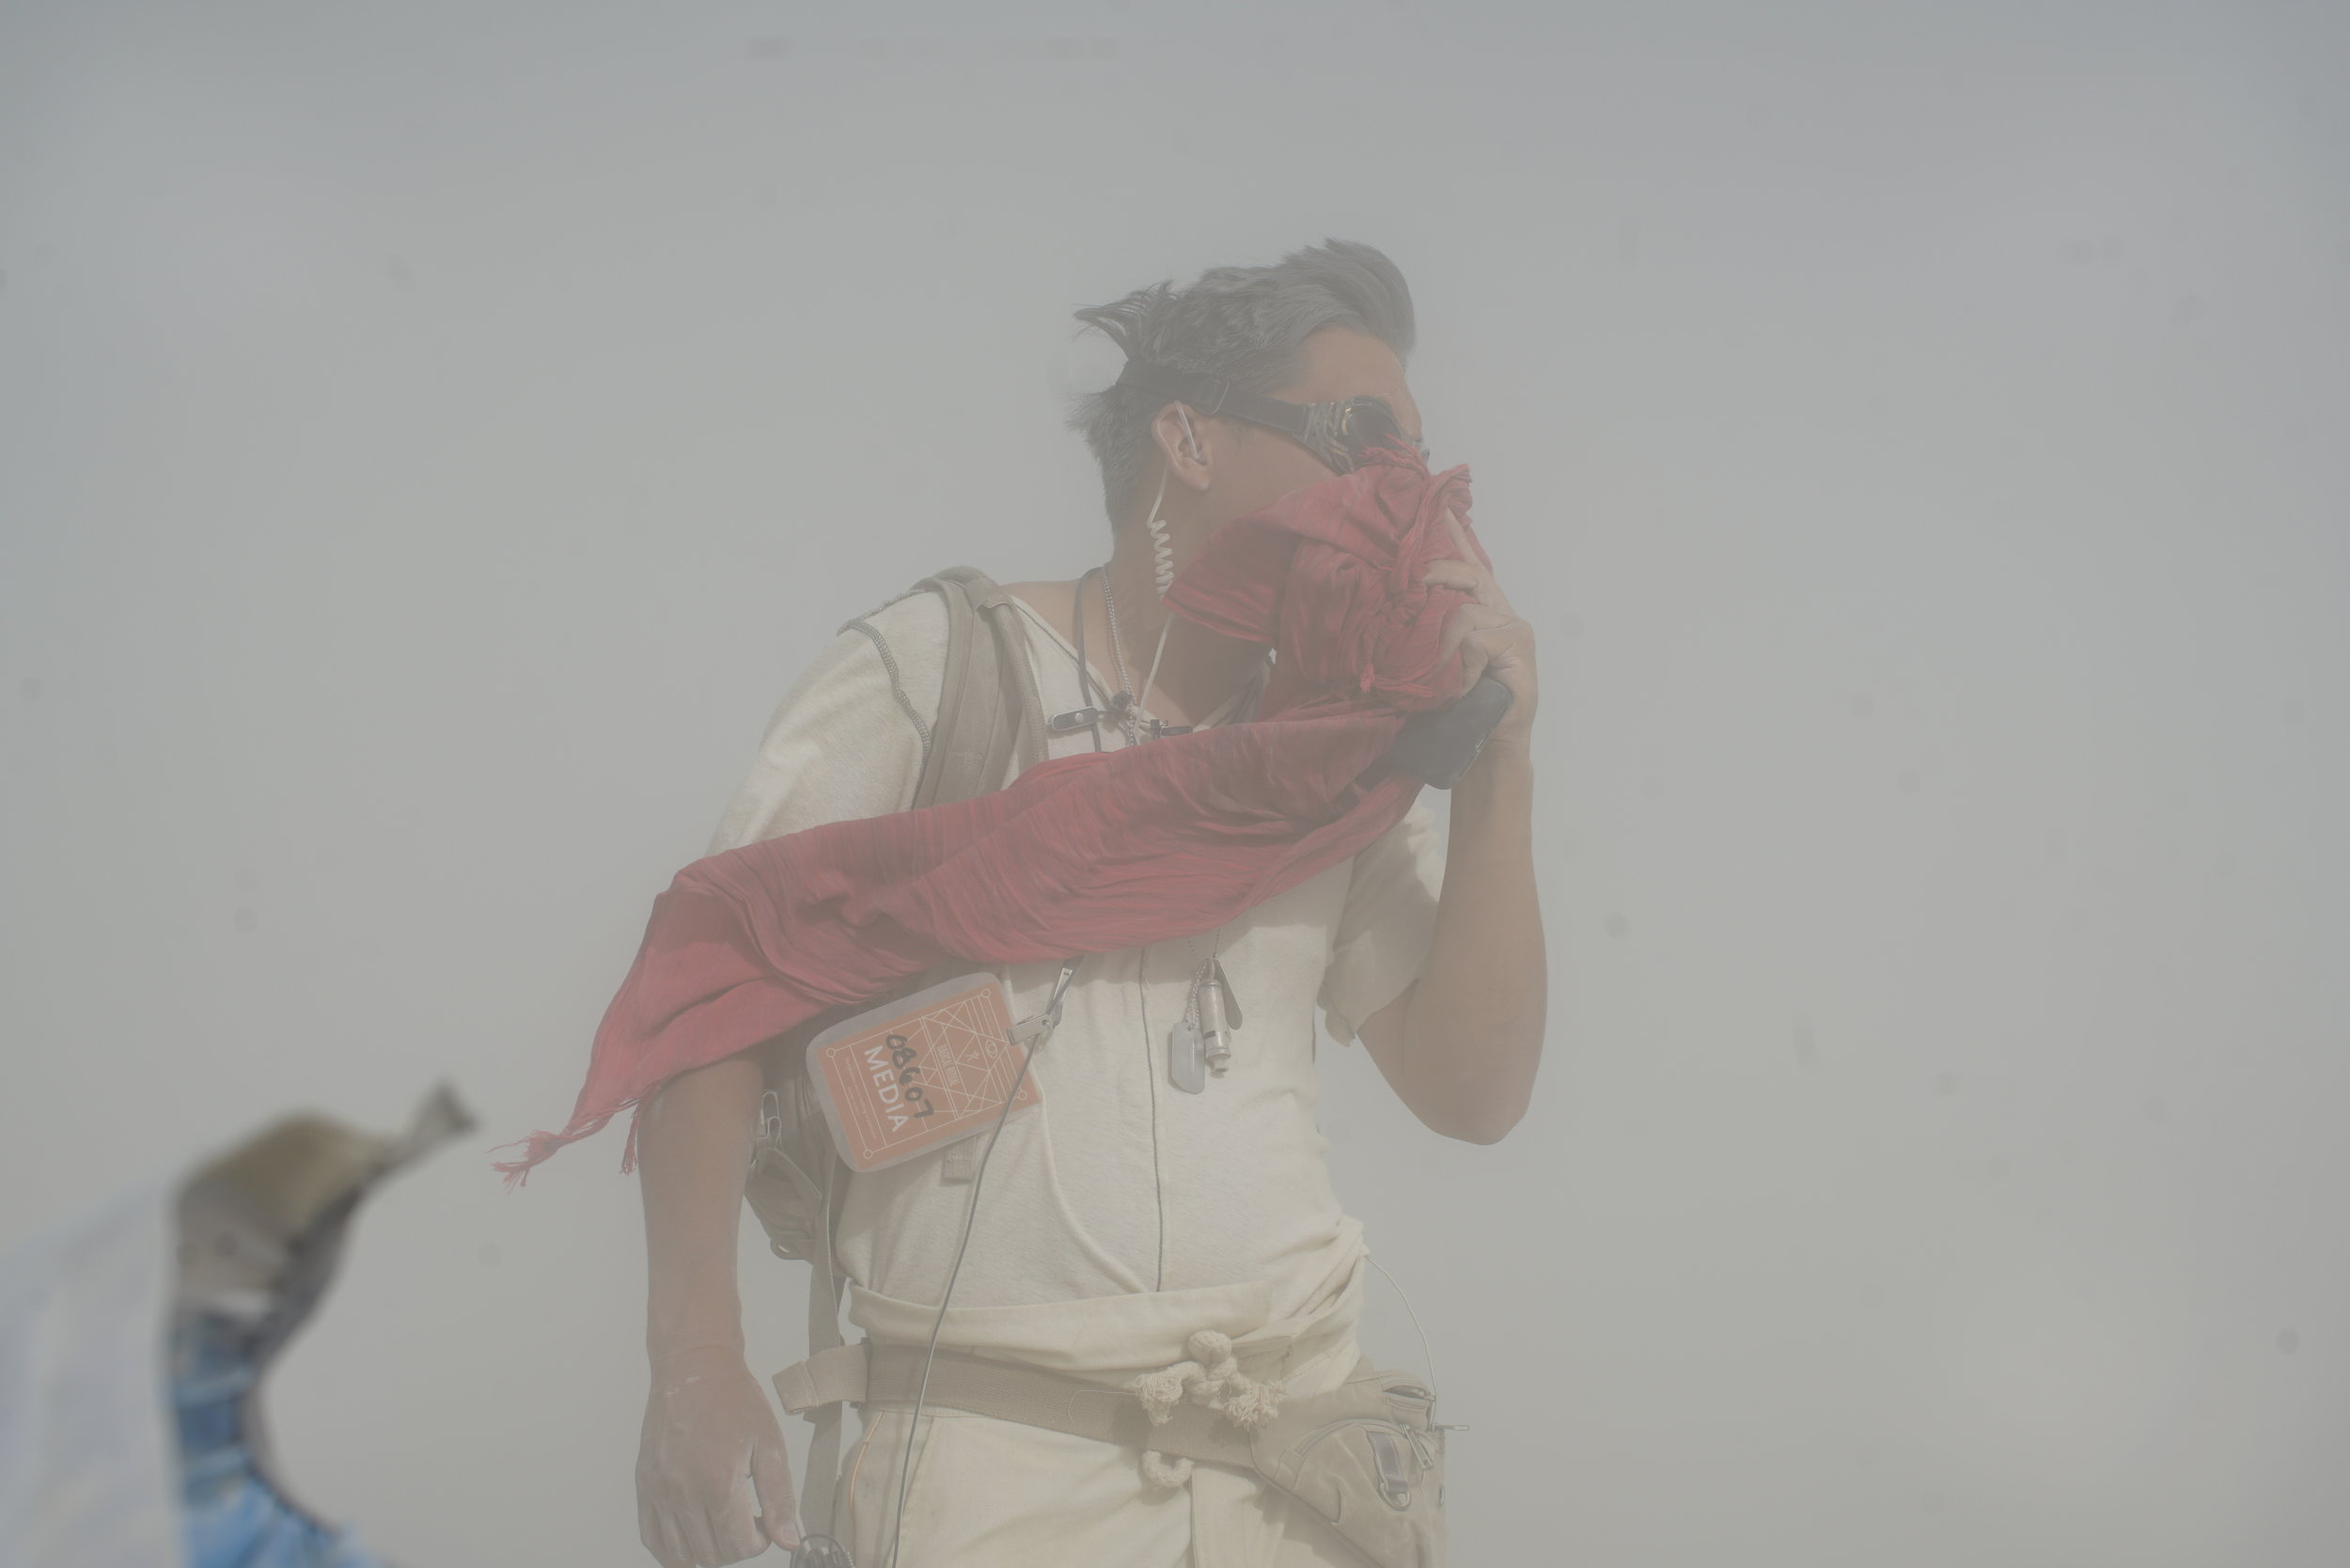 Director/Producer Ryan Moore filming in a sandstorm